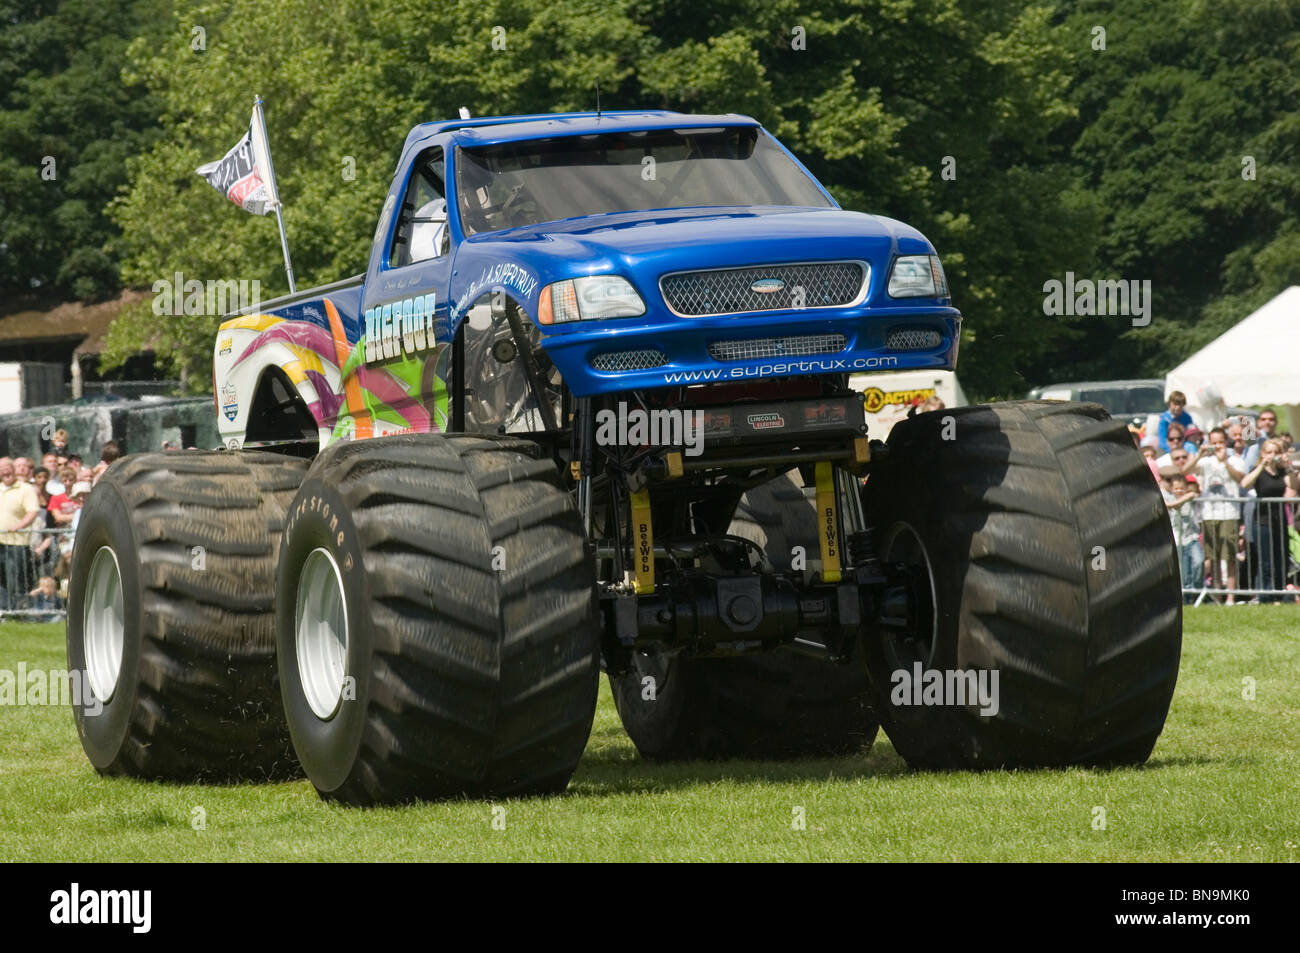 bigfoot monster truck trucks suv ford pickup pick up car crushing stock photo 30331924 alamy. Black Bedroom Furniture Sets. Home Design Ideas